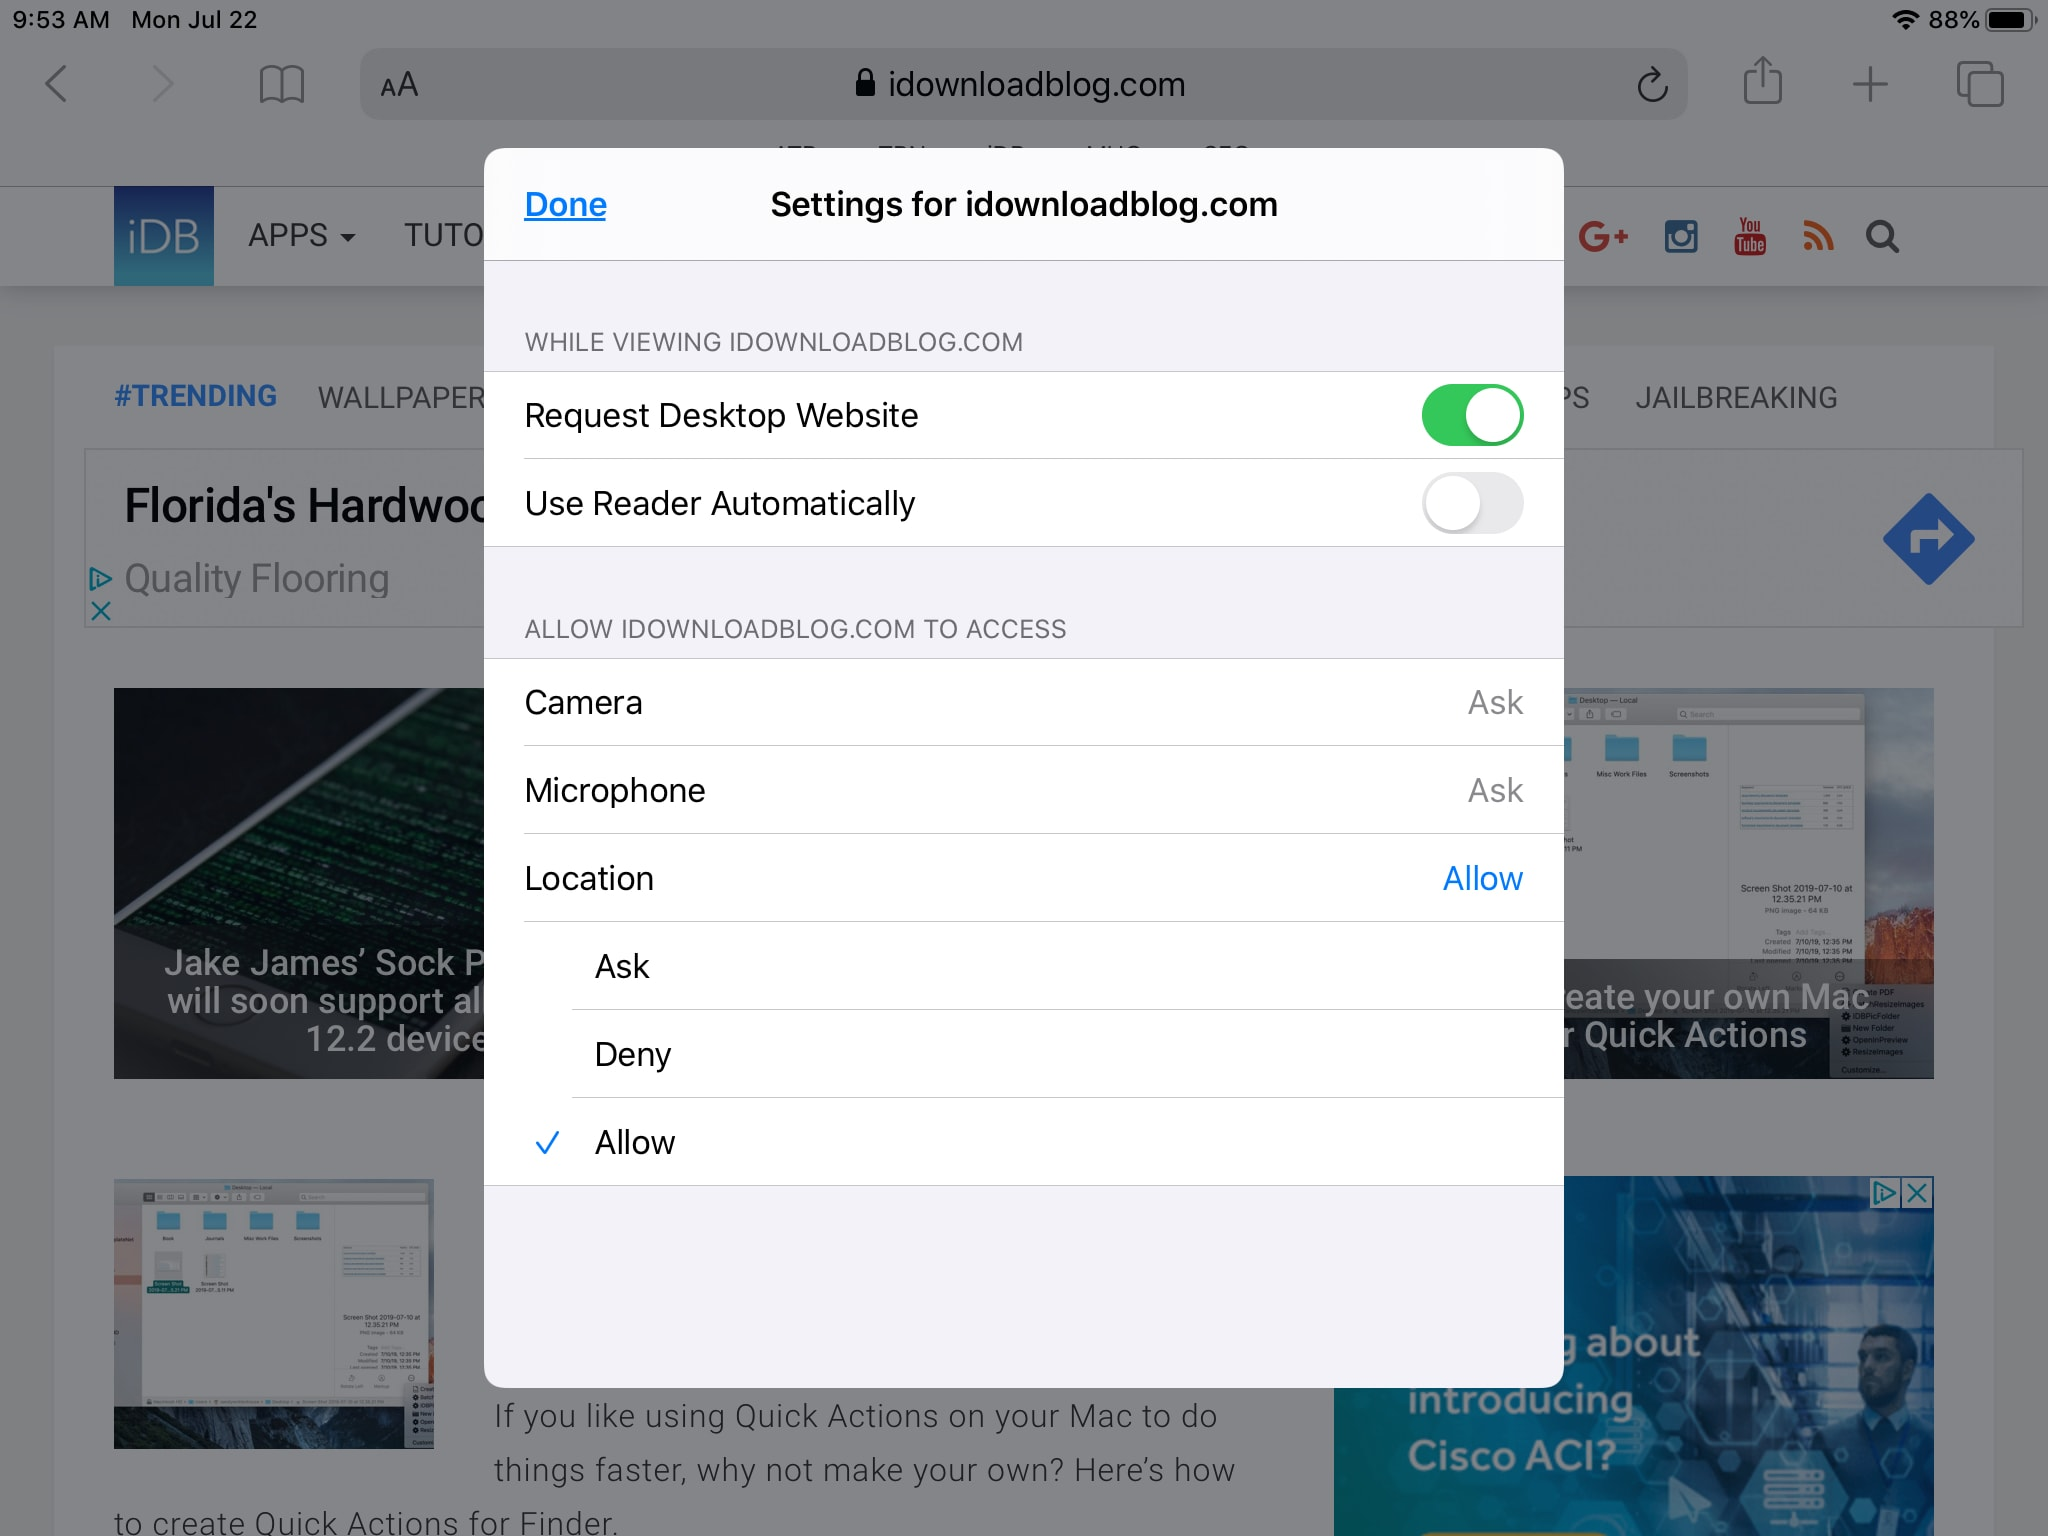 Safari iPadOS Per-Site Settings